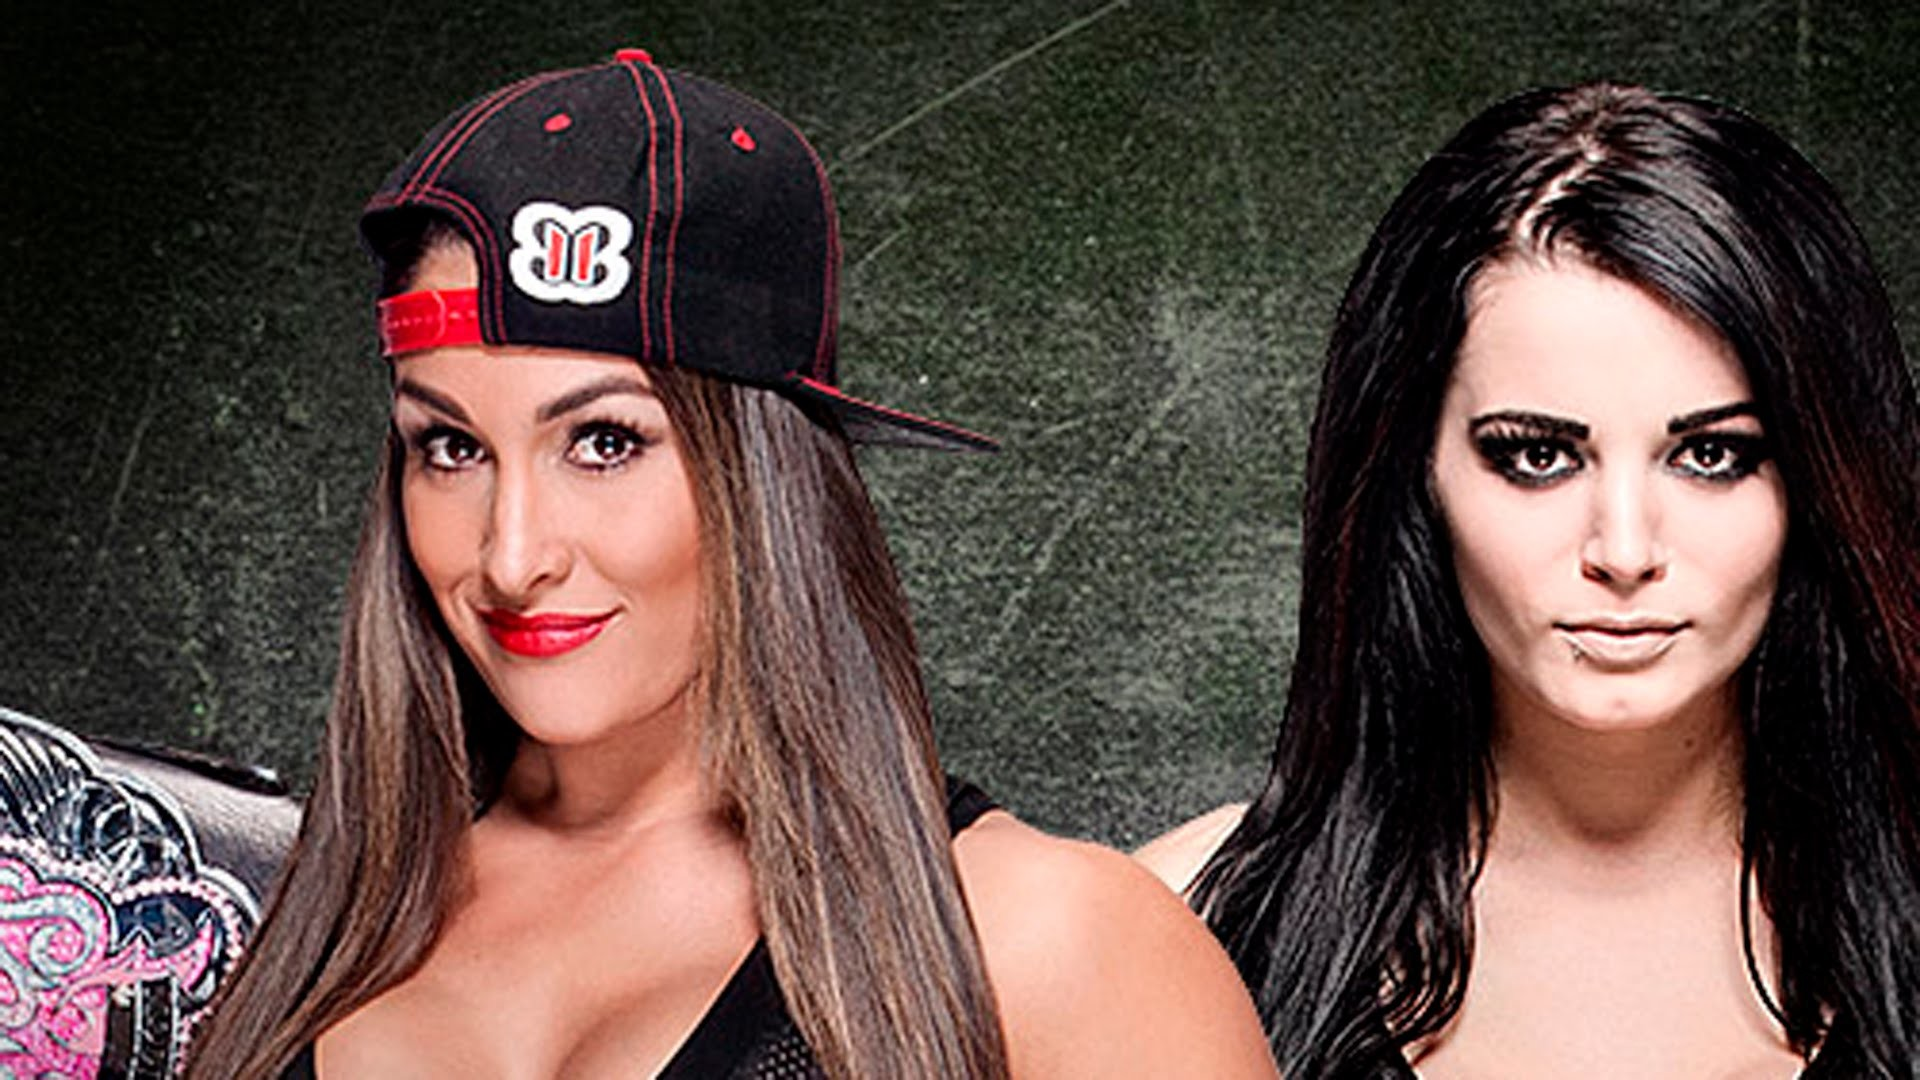 1920x1080 Paige vs. Nikki Bella - WWE Divas Championship - Money in the Bank WWE 2K15  Simulation - YouTube